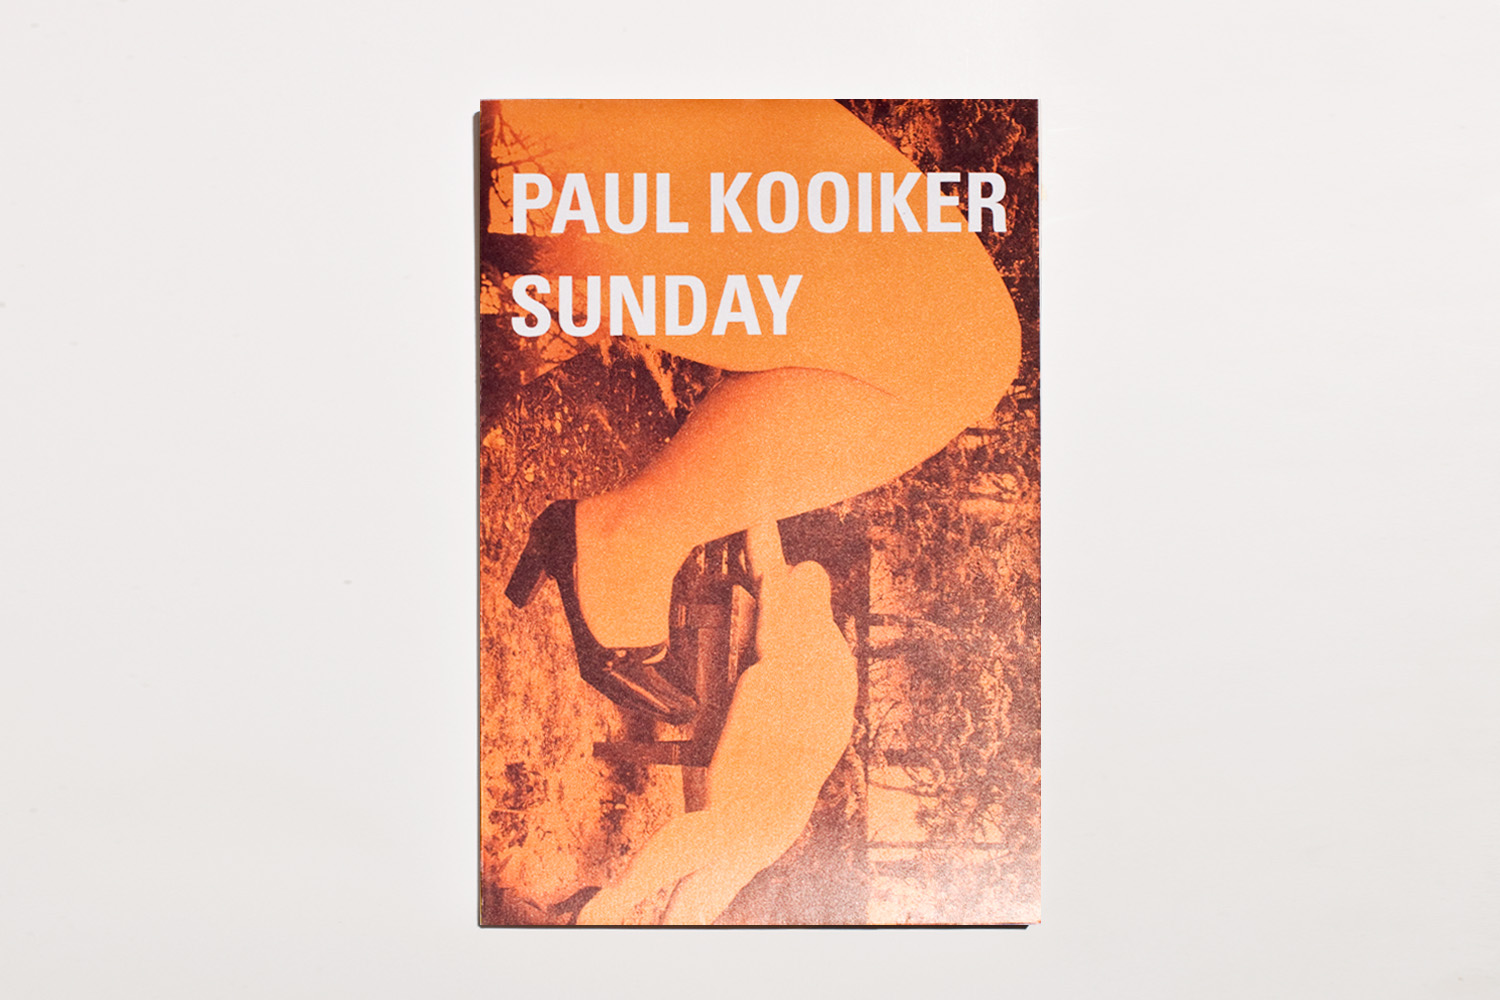 Sunday by Paul Kooiker, selected by Daniel Power of powerHouse Books